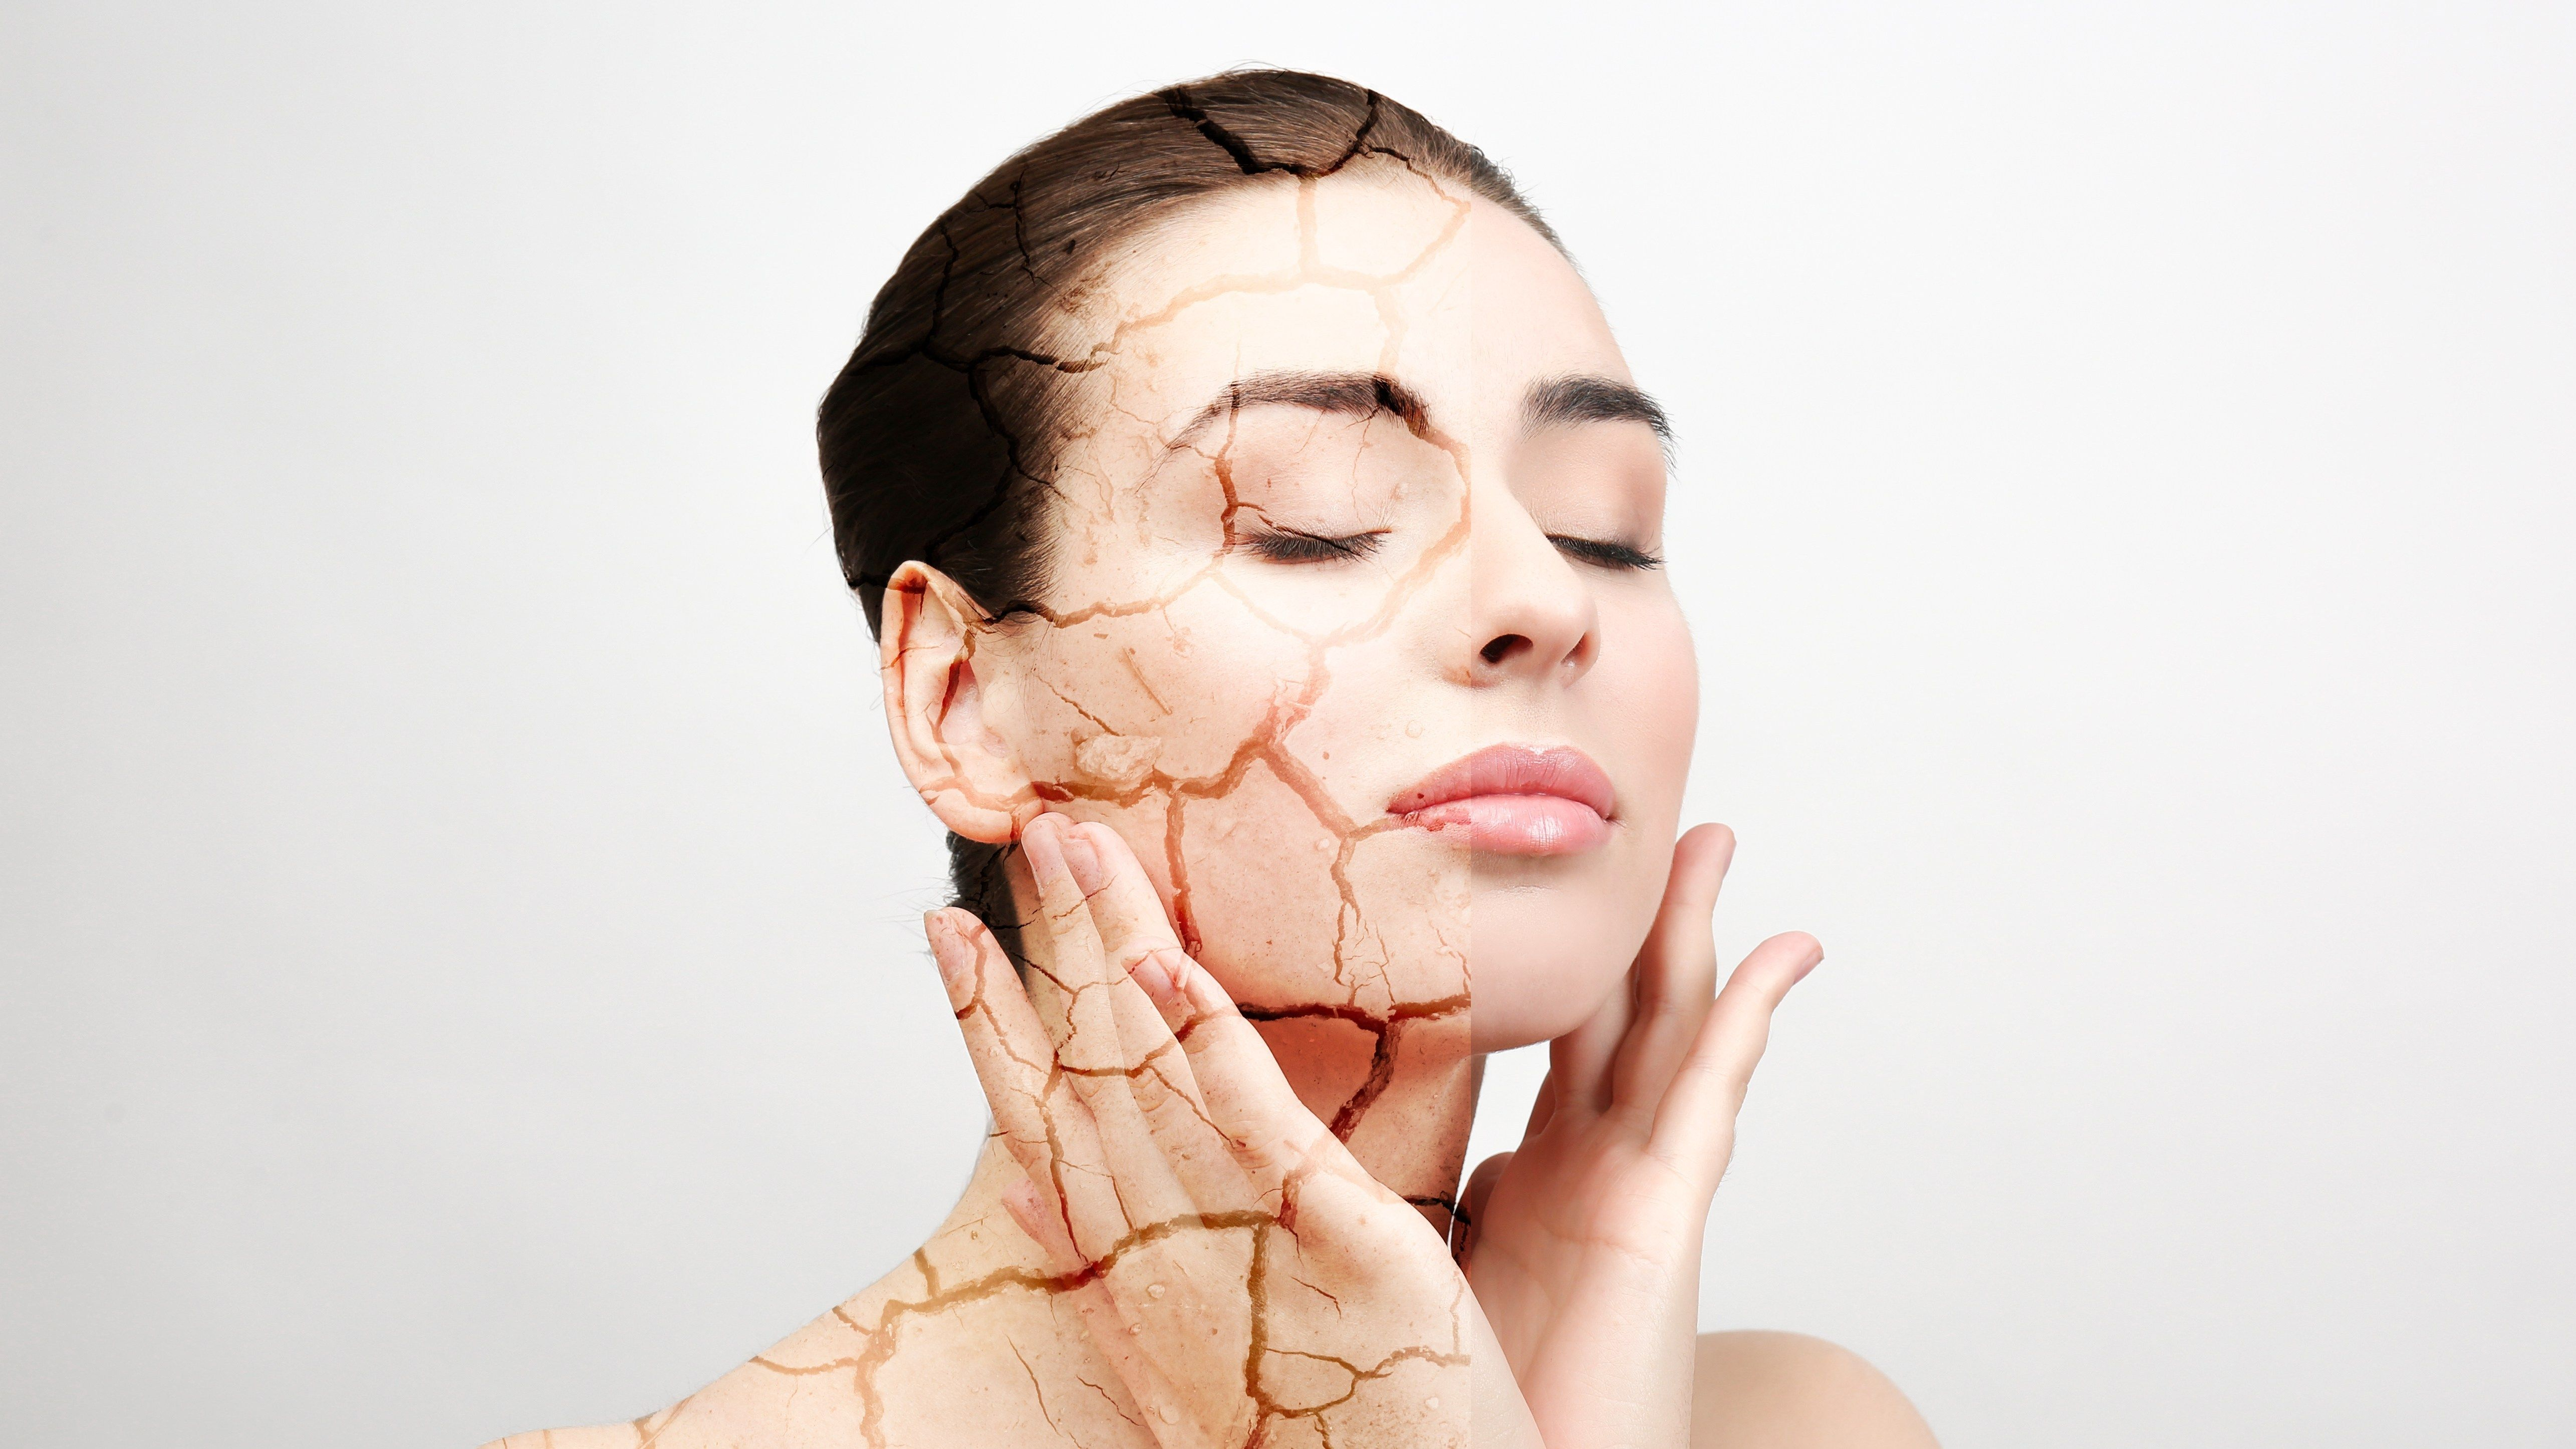 Top 10 Tips for Relieving Dry Skin Image 2